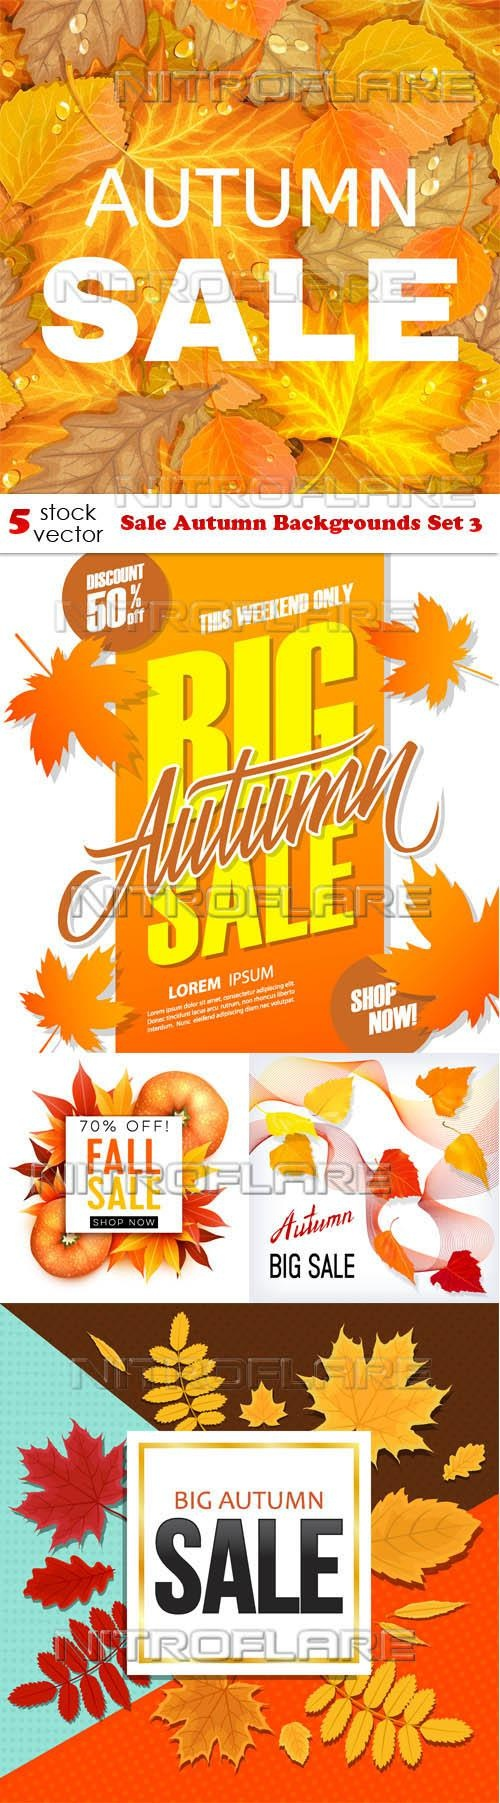 Sale Autumn Backgrounds Set 3 ((aitff (9 files)